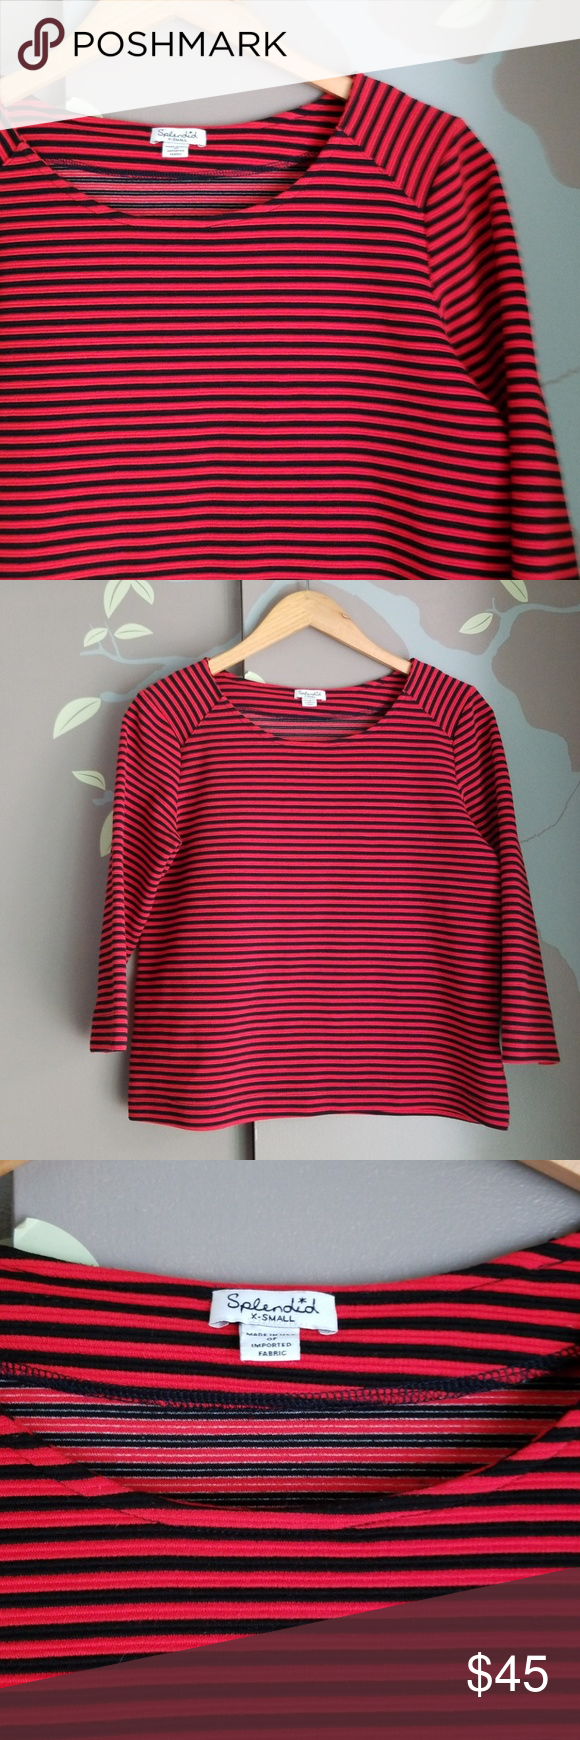 556c79d217 Splendid ribbed stripe boatneck top Red and dark Navy, (almost black)  ribbed thick knit top with 3/4 sleeves and wide boatneck Loose straight cut  and ...